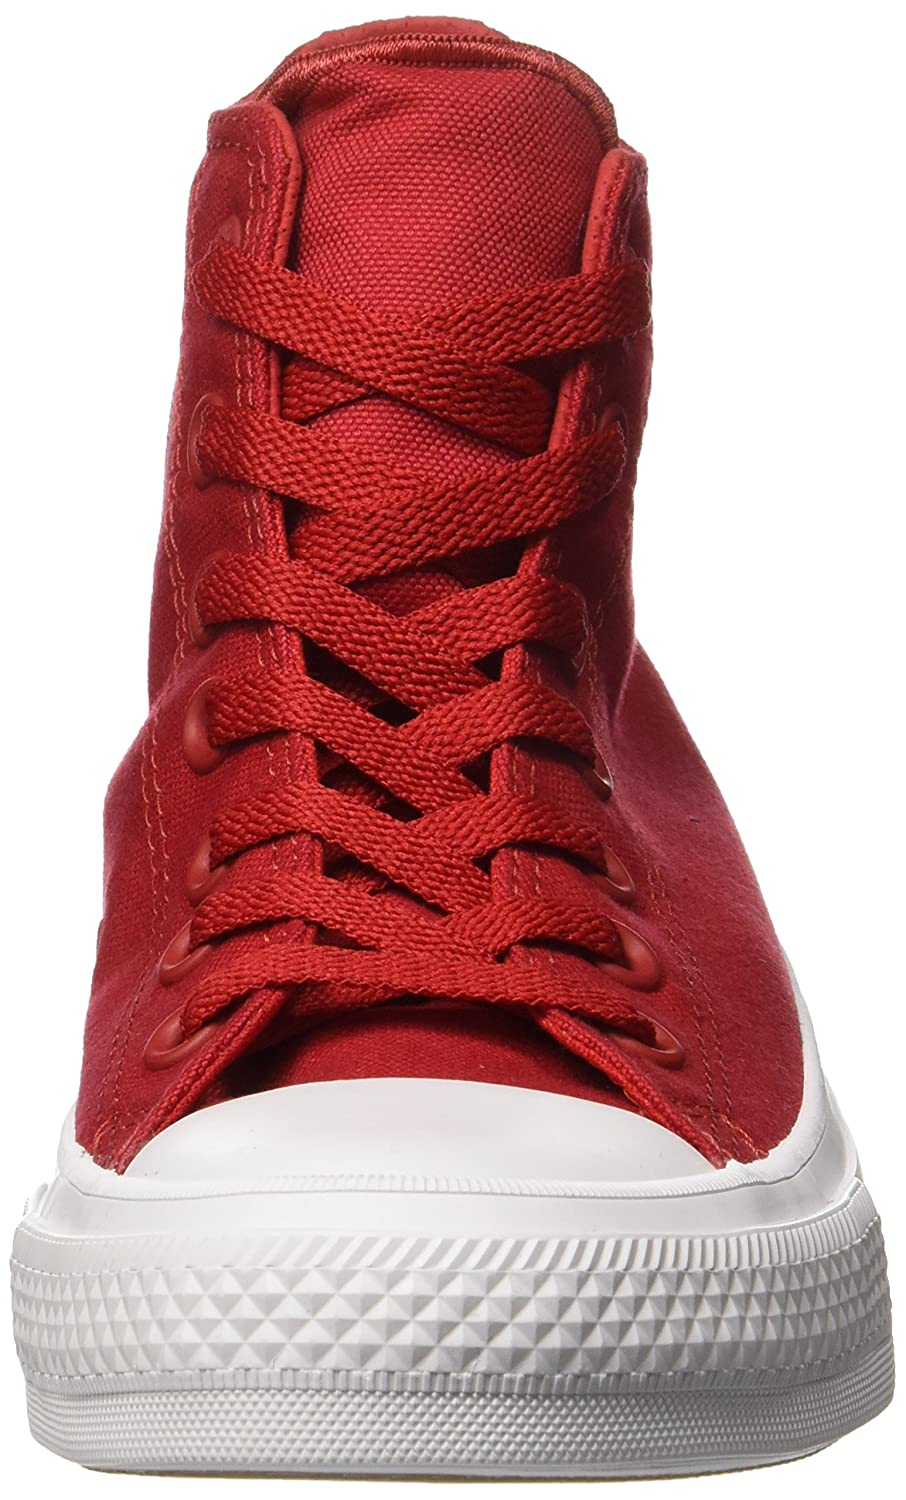 Converse Unisex-Erwachsene Chuck Taylor All Star Ii High High Ii Turnschuhe top 8923f1